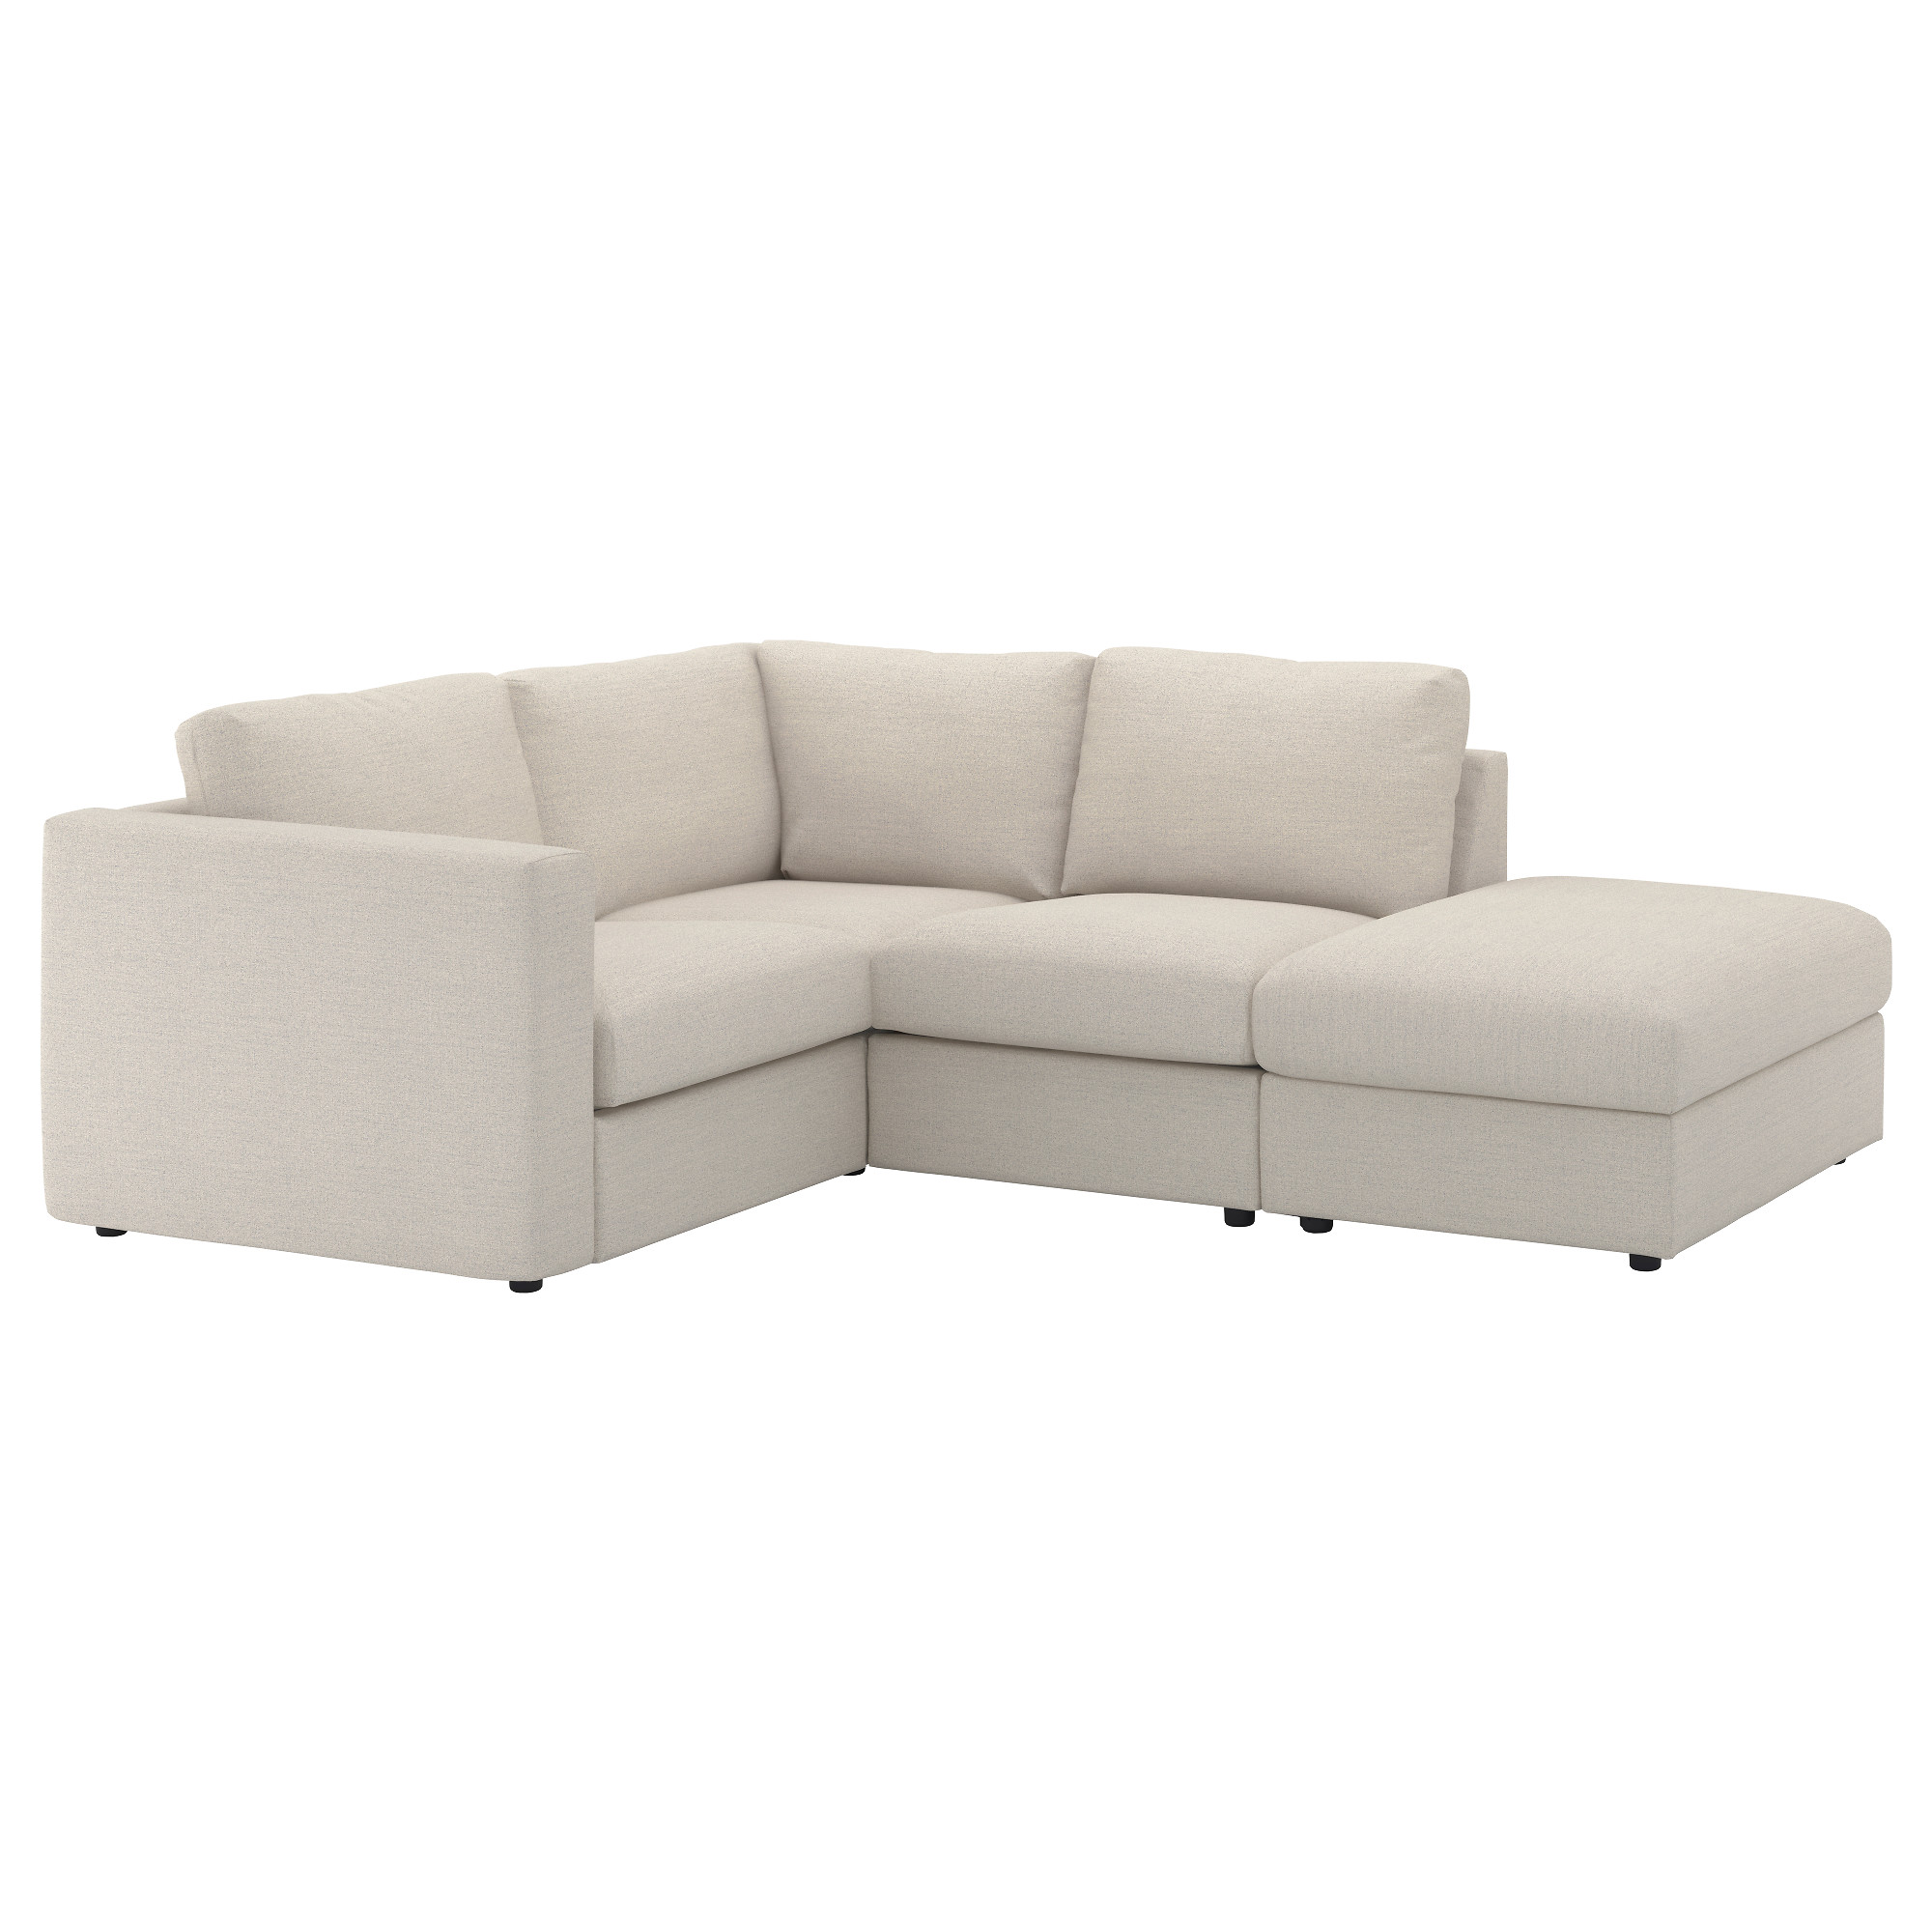 Vimle Sectional 3 Seat Corner With Open End Gunnared Beige